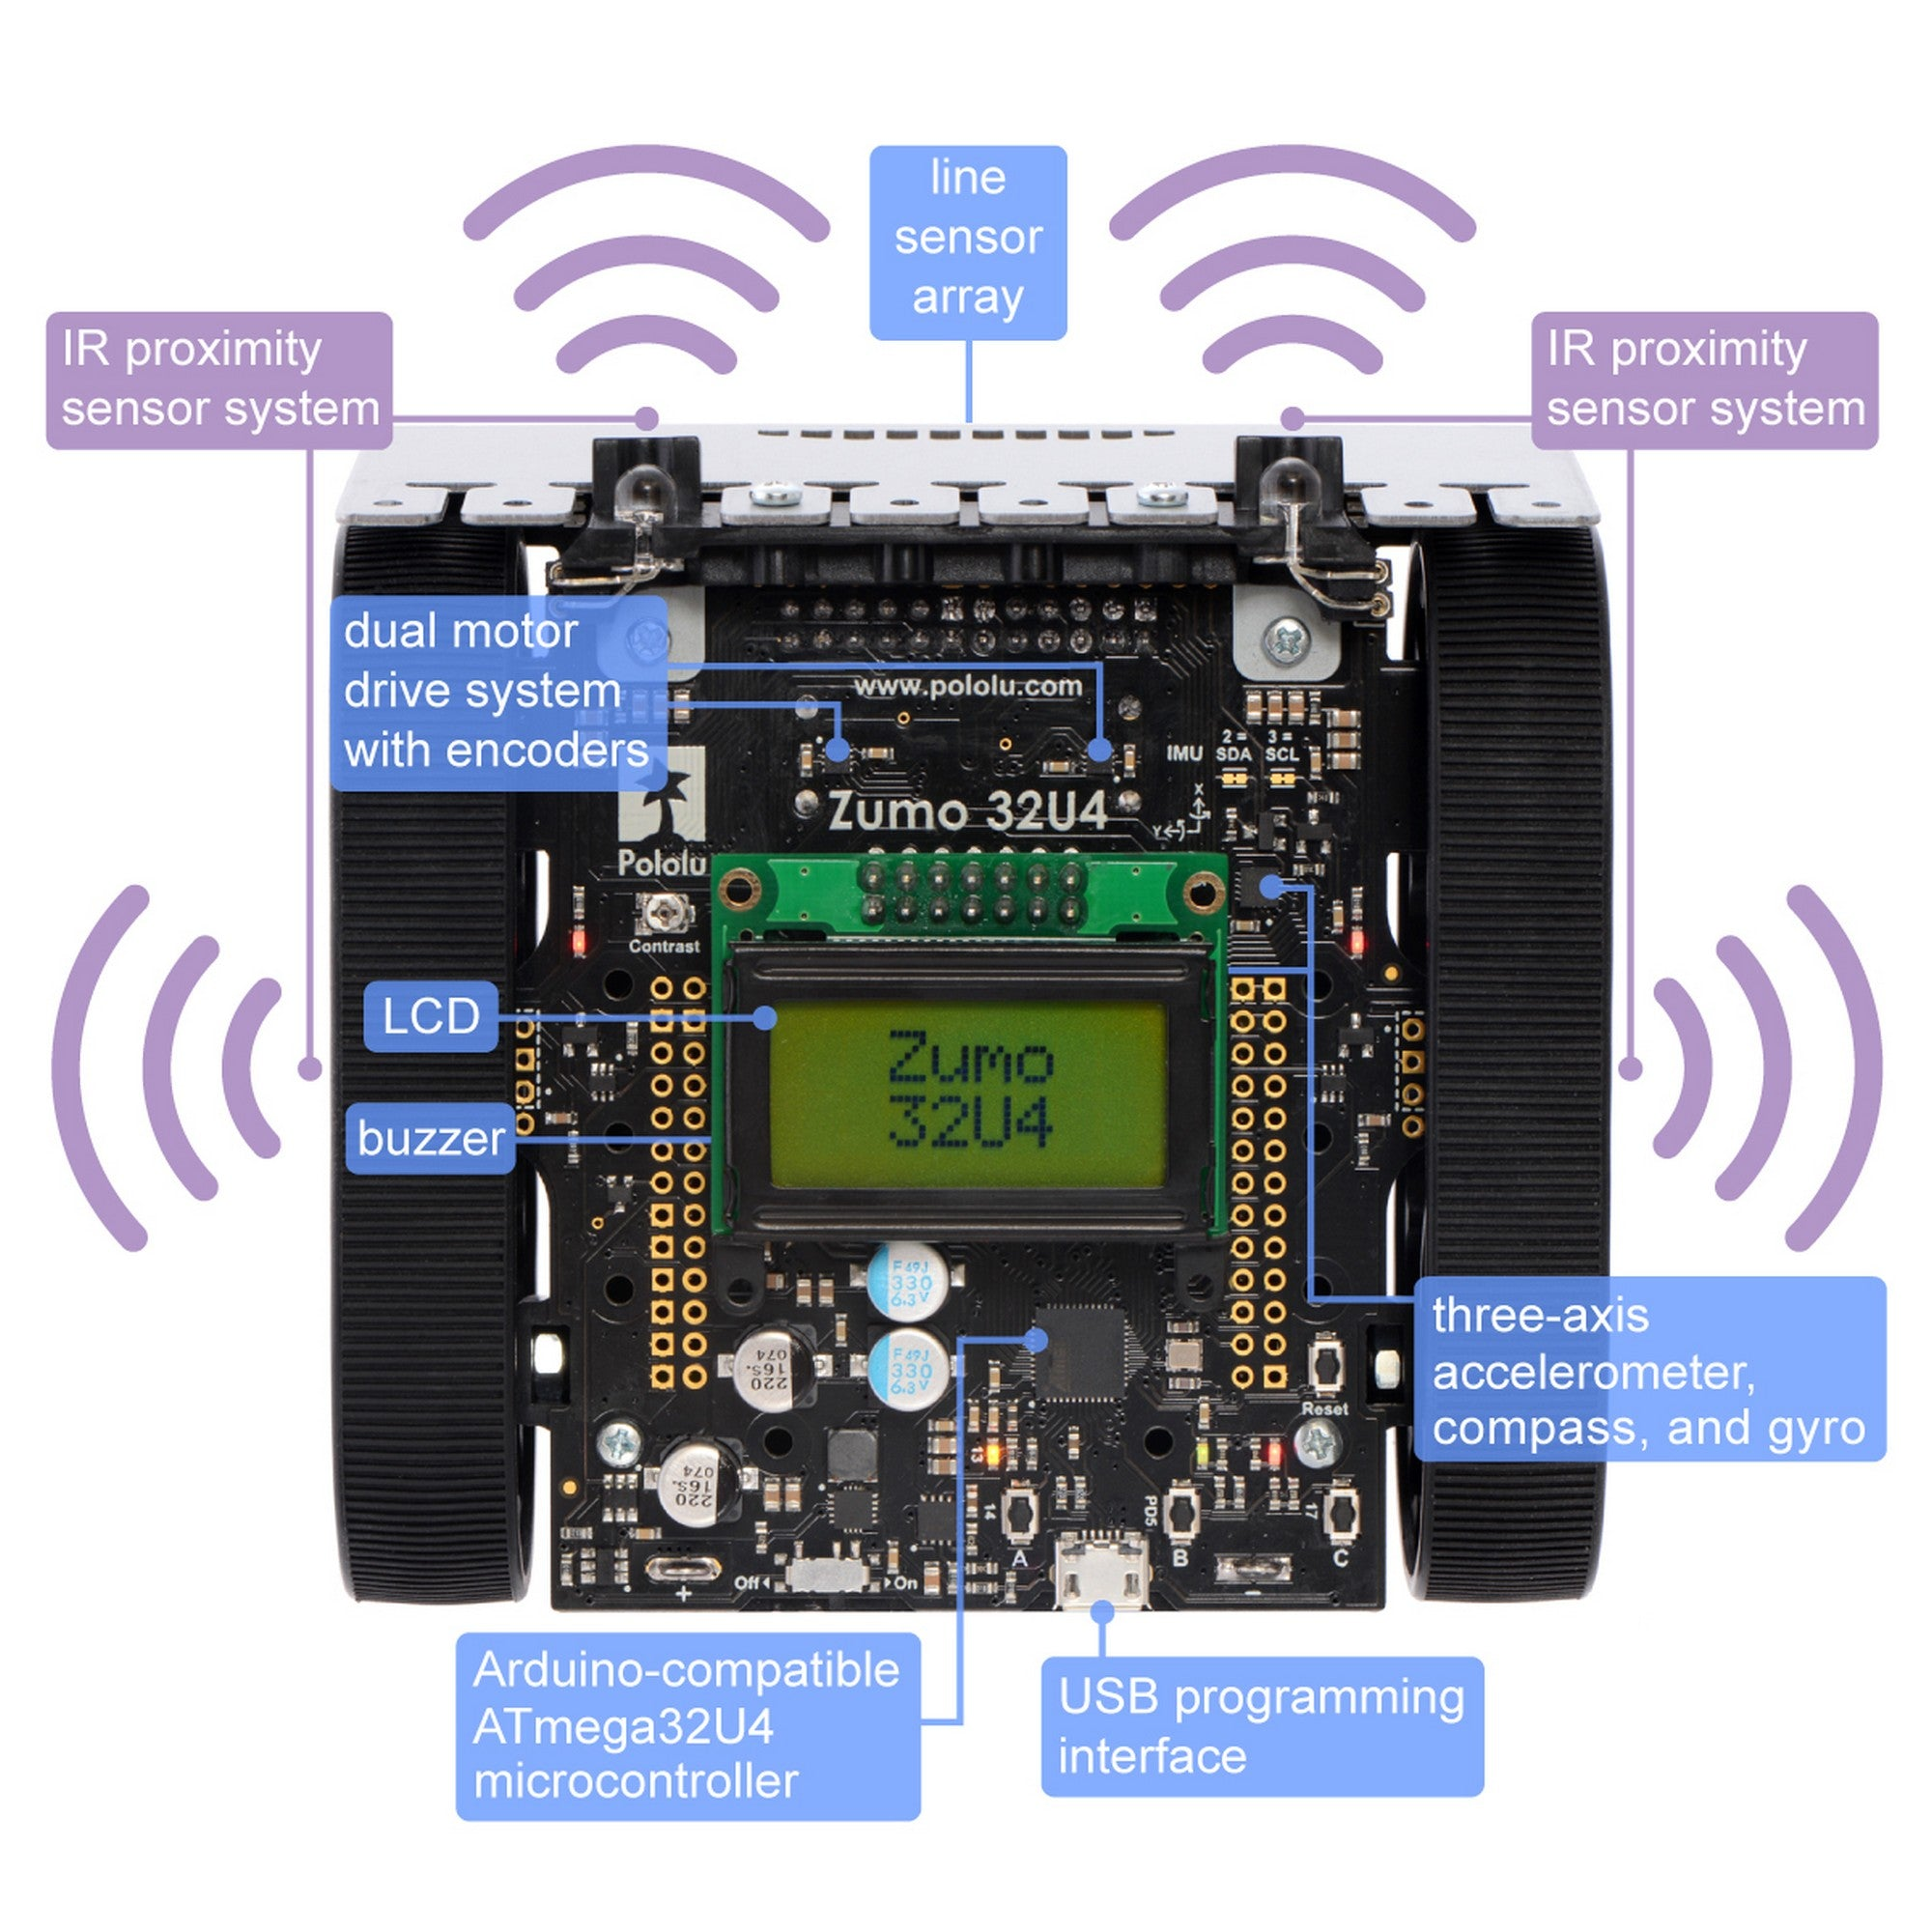 Main Features of the Zumo 32U4 Robot